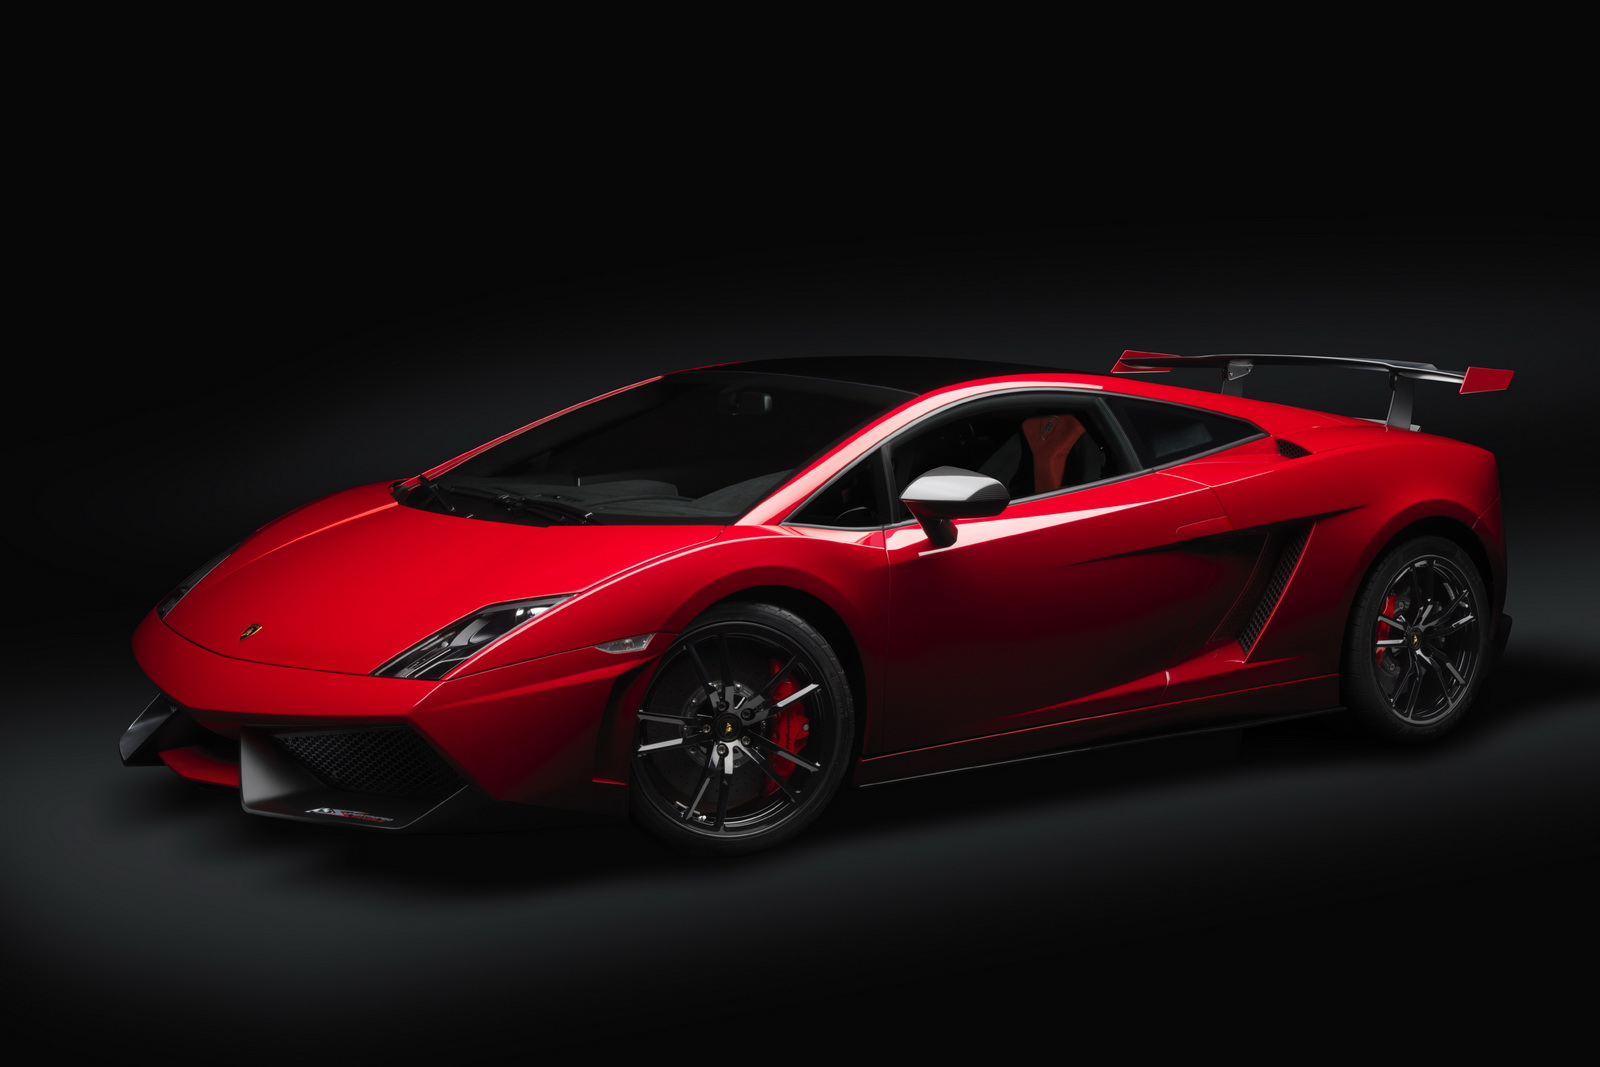 Lamborghini Cars Wallpapers HD Free Download